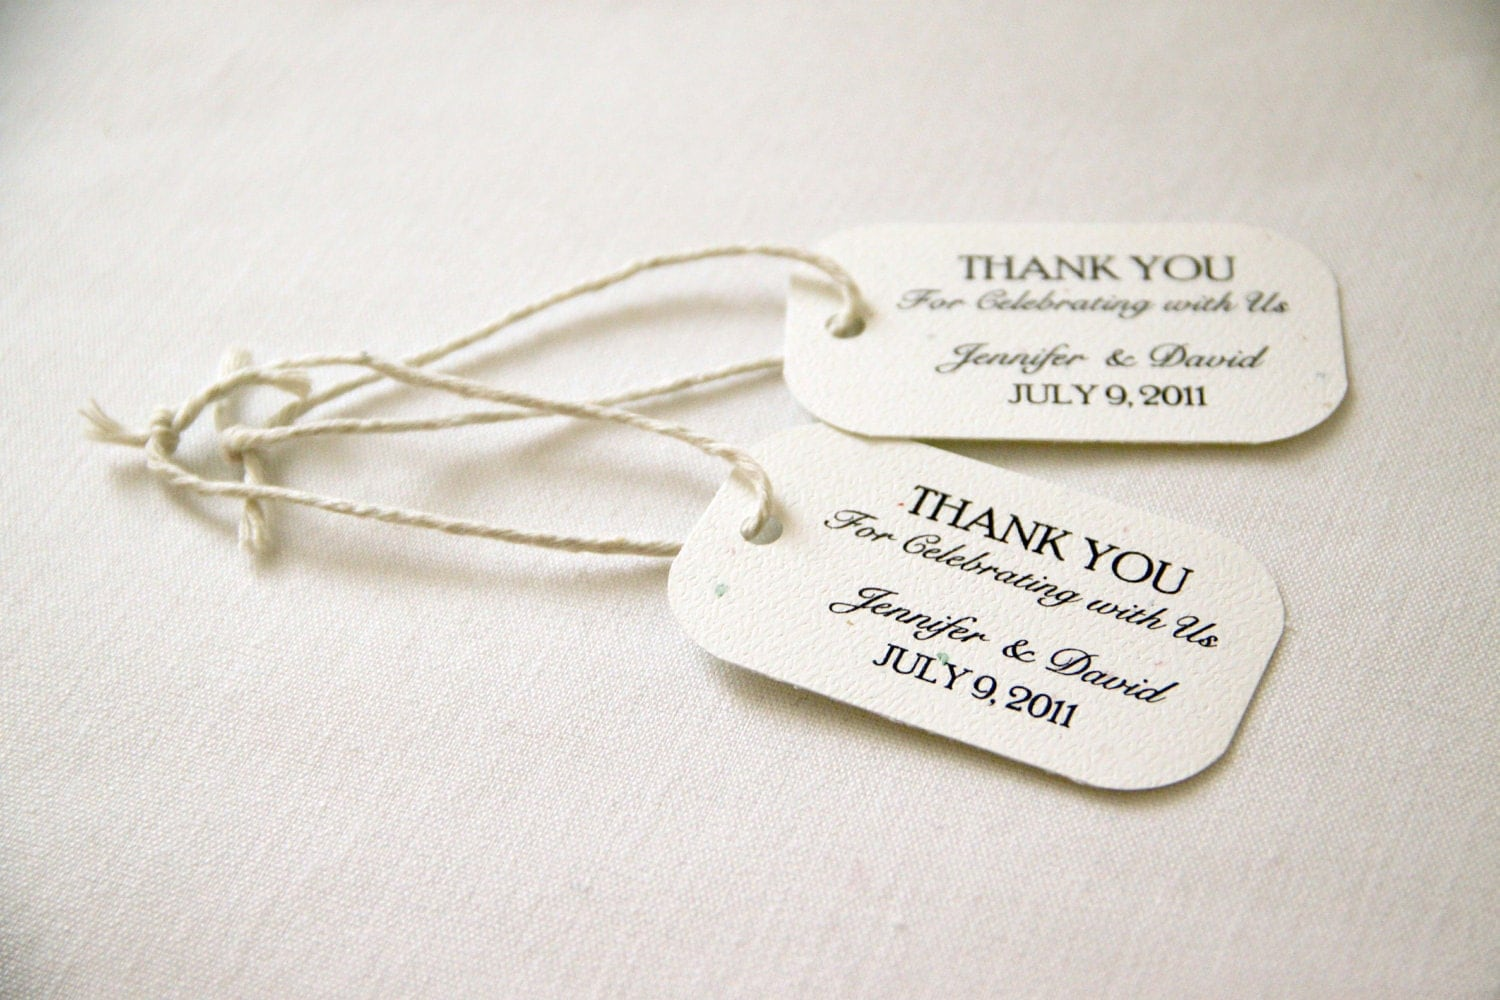 Wedding Favor Tags With Photo : 150 Mini Wedding Favor Gift Tags Classic Thank You